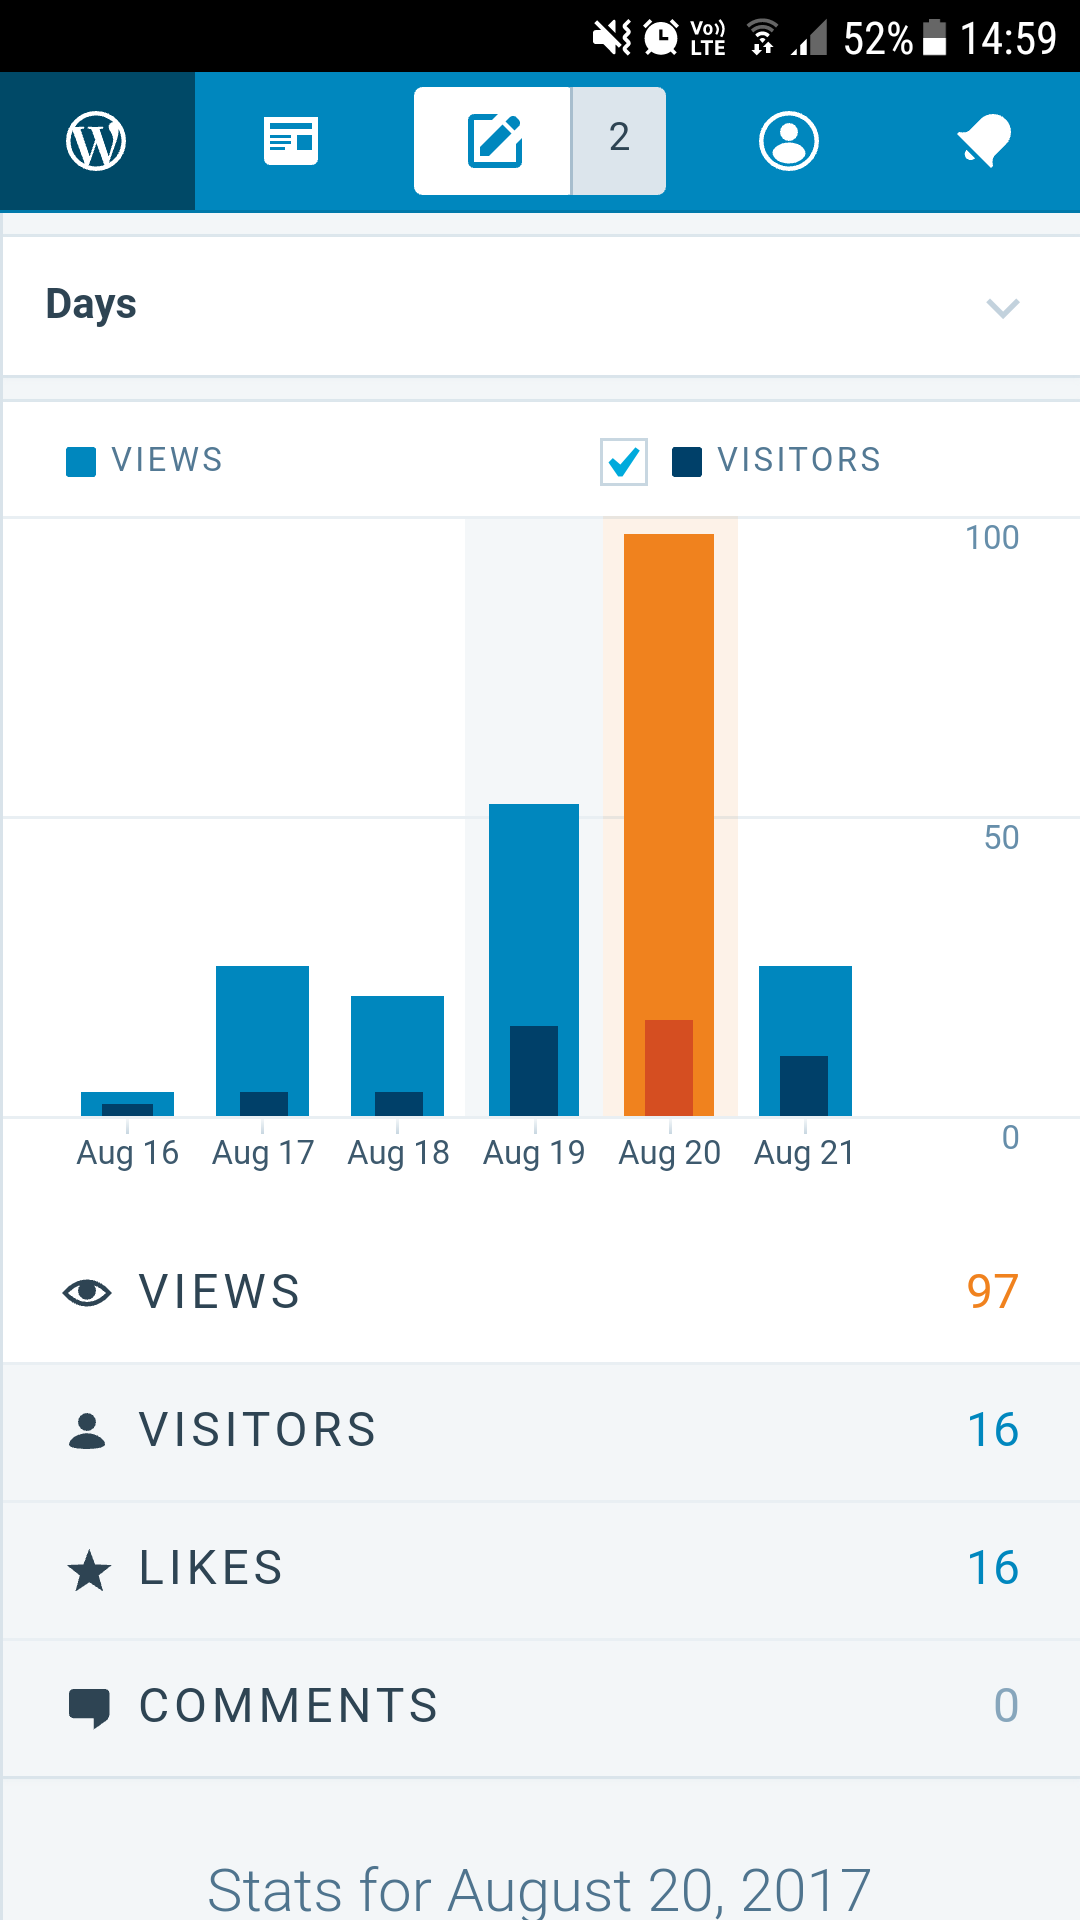 Wow 97 views and just 16 visitors???? Wonder how that happened